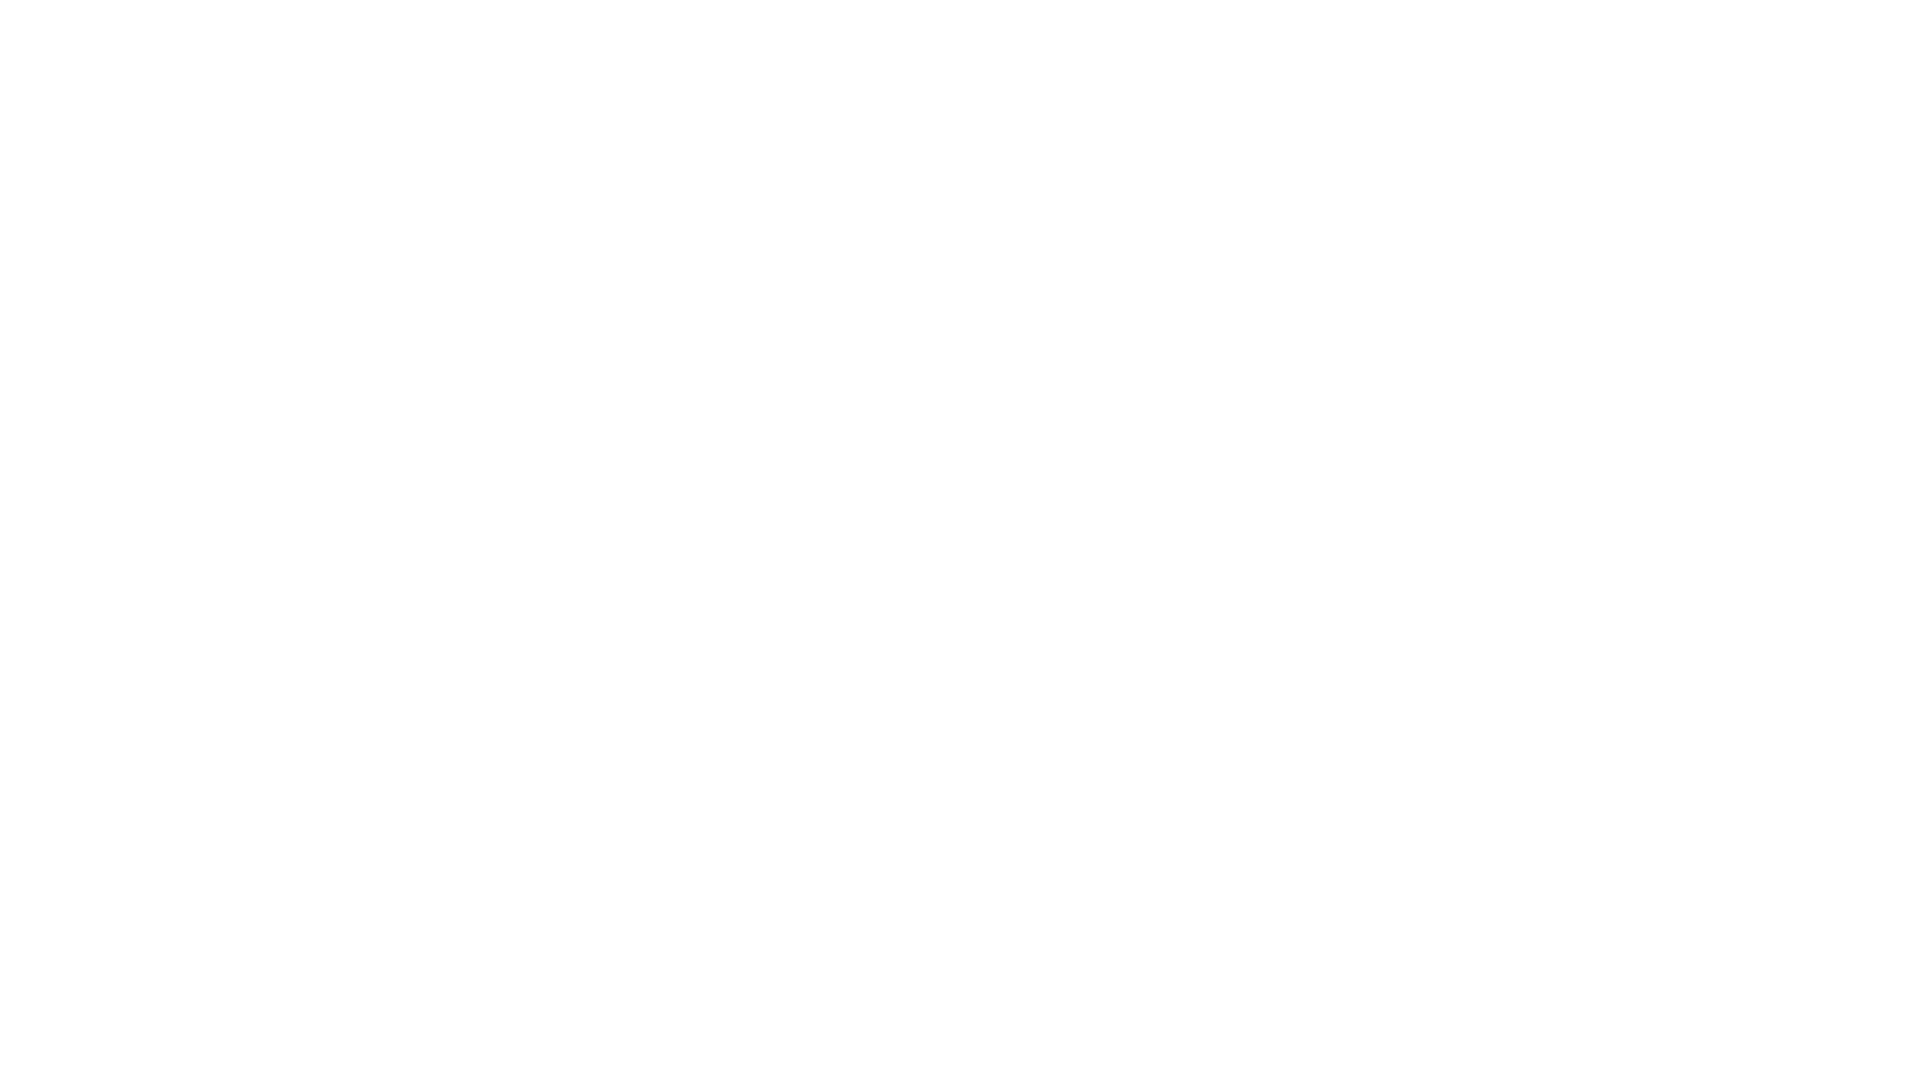 michael weber art music and passion jahnkedesign 2017